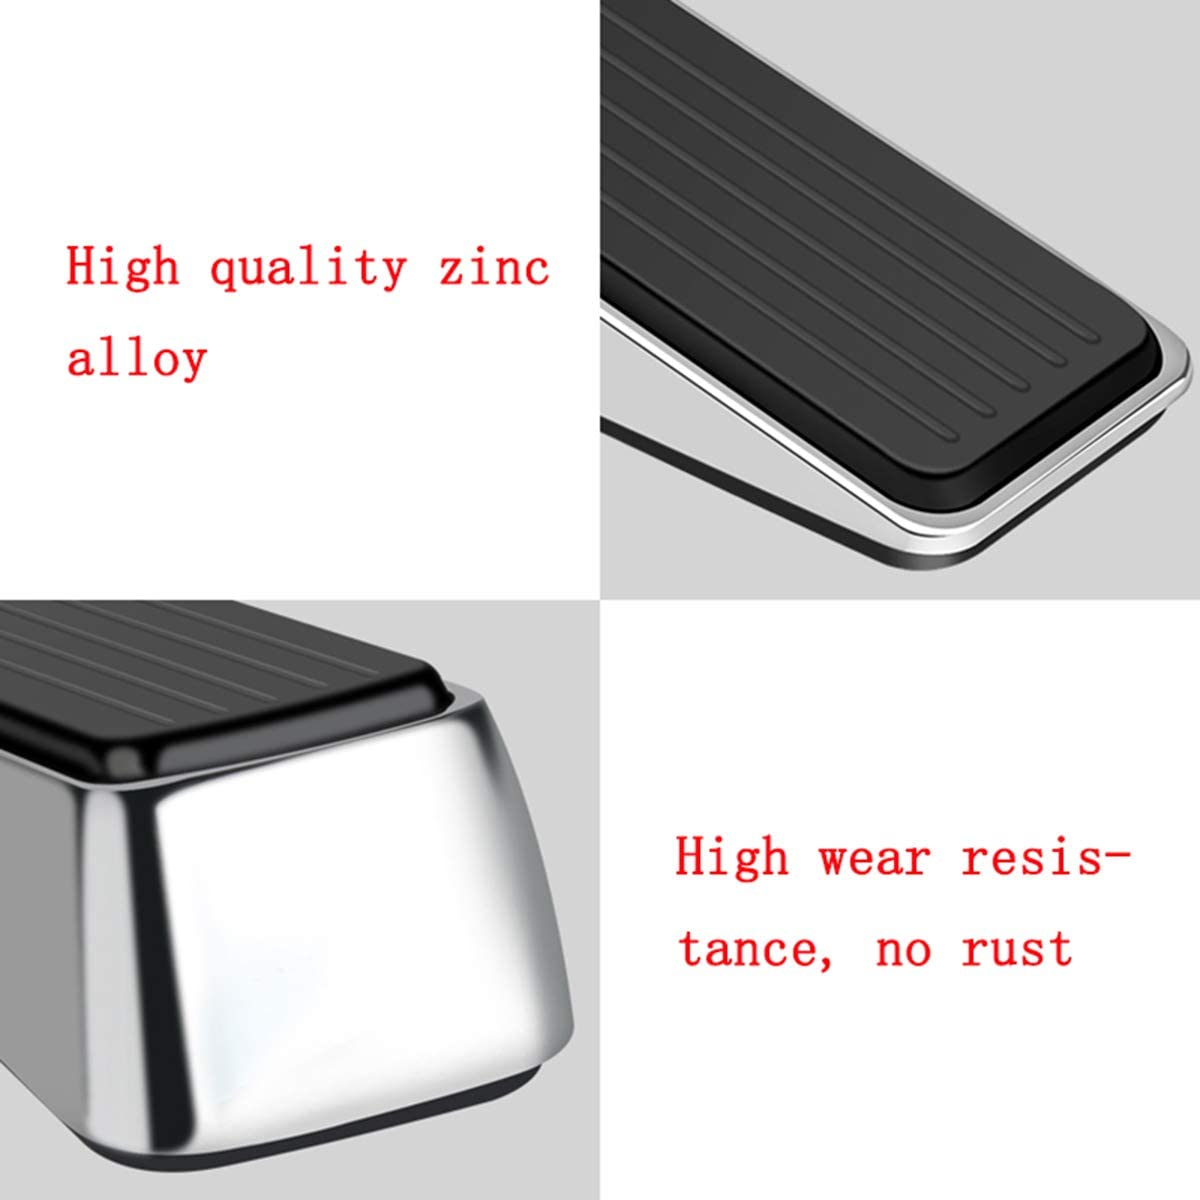 ZXWCYJ Heavy Duty Door Stop Wedge Sturdy and Durable Security Door Stop Wedge Suits Any Door,Any Floor,Brushed Color Made of Premium Quality Zinc Alloy and Rubber